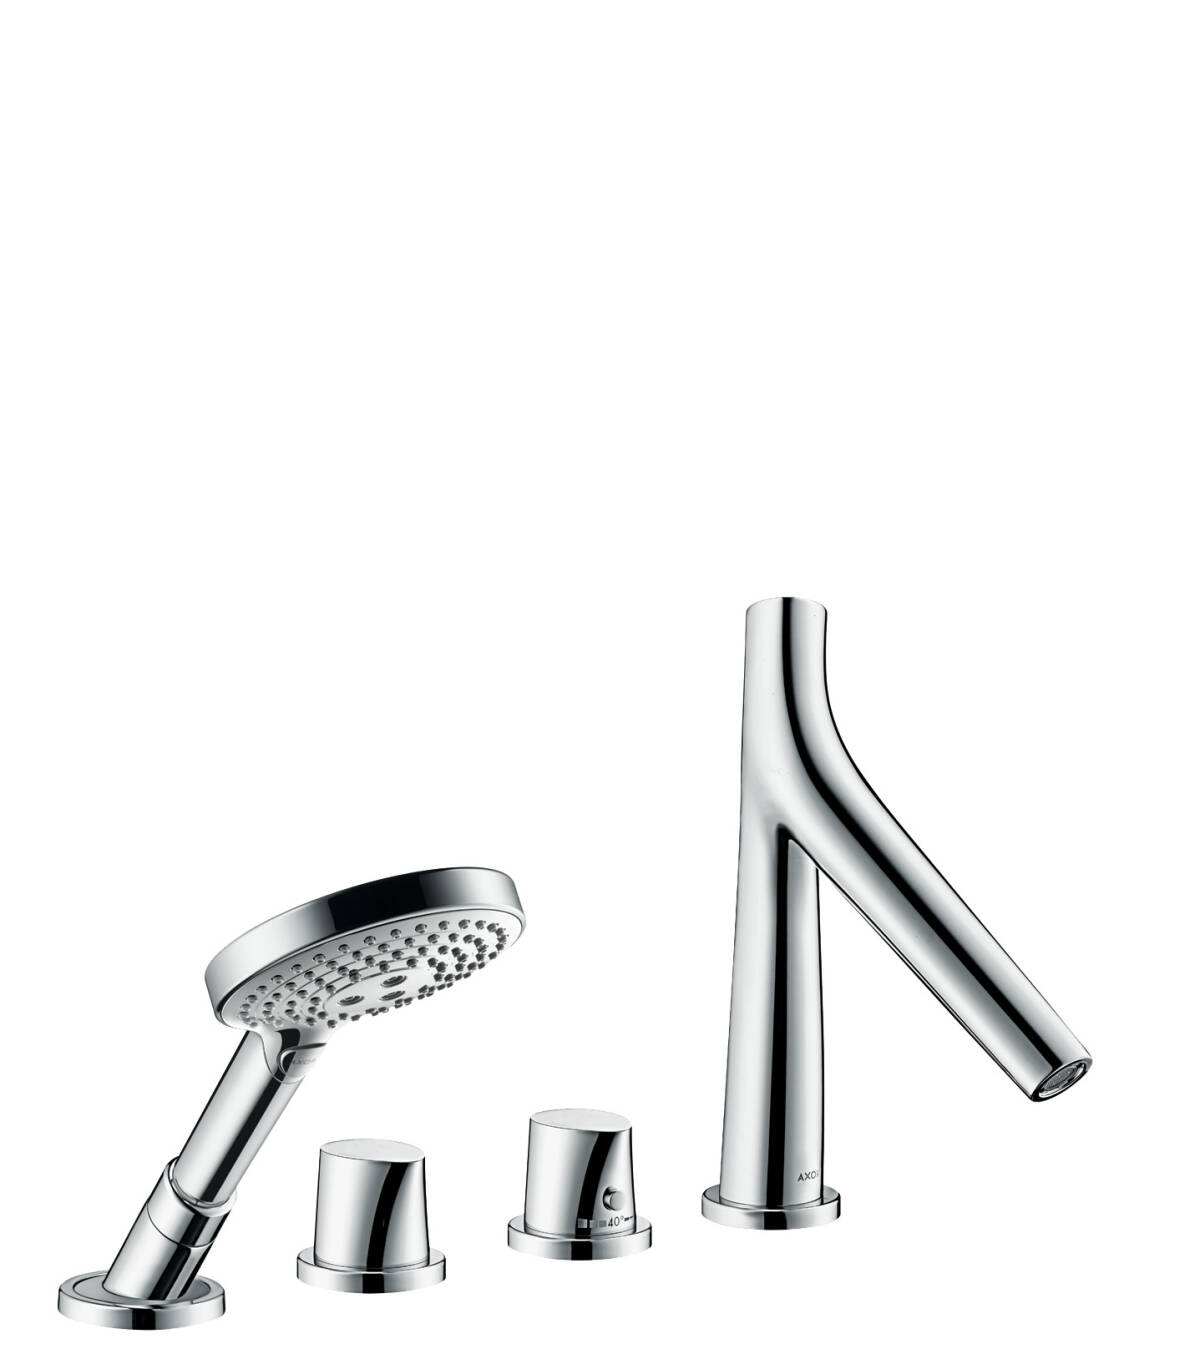 4-hole tile mounted thermostatic bath mixer, Polished Nickel, 12426830